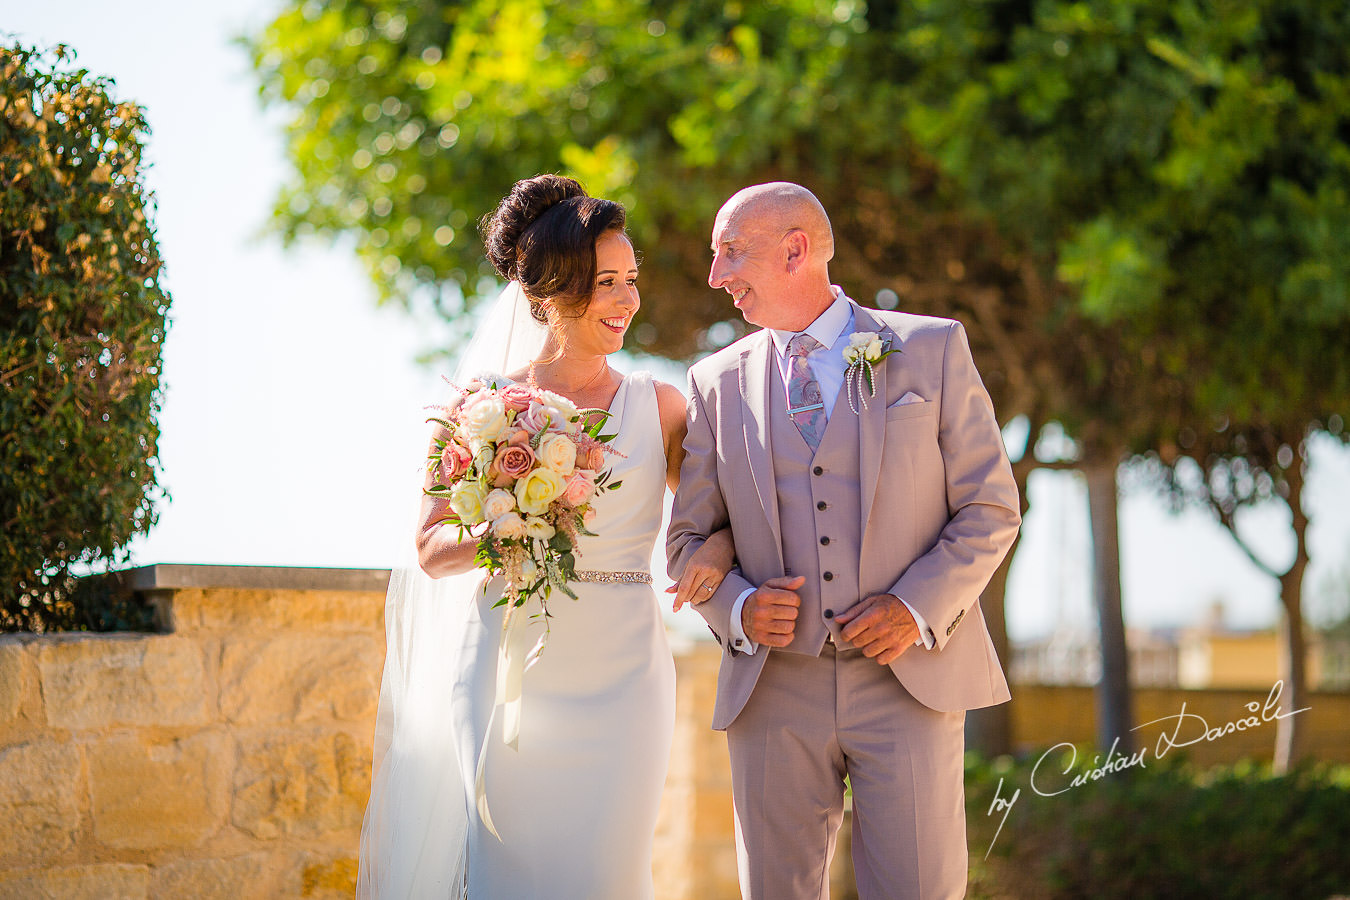 The arrival of the bride, moments captured by Cristian Dascalu during an elegant Aphrodite Hills Wedding in Cyprus.